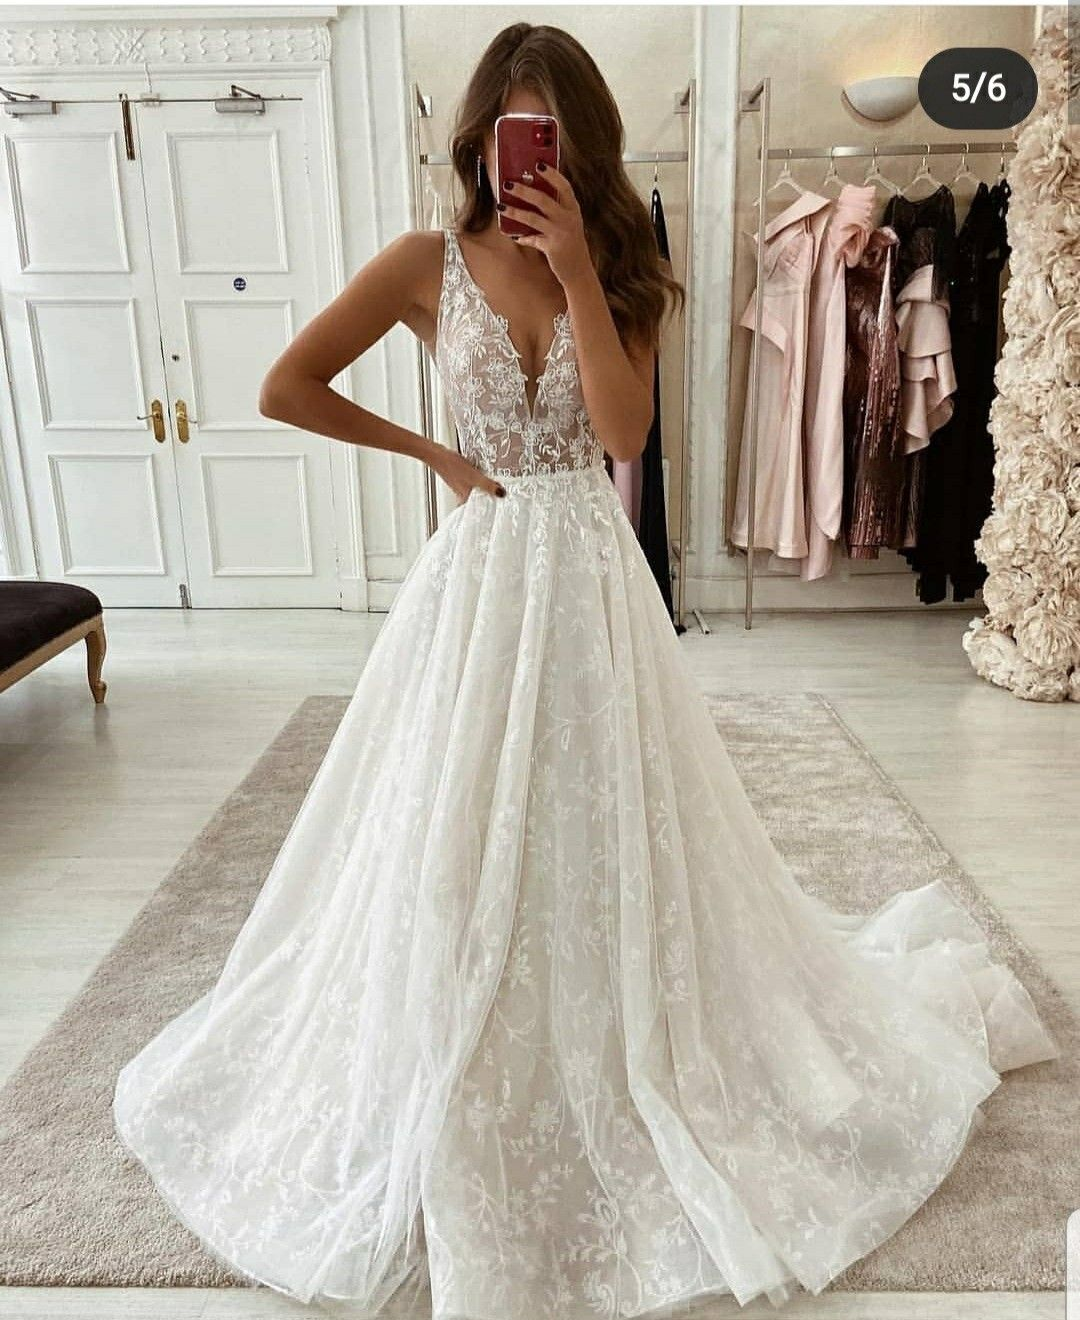 Pin By Mia Mszaneckyj On Wedding In 2020 Wedding Dresses Blush Rustic Wedding Gowns Best Wedding Dresses